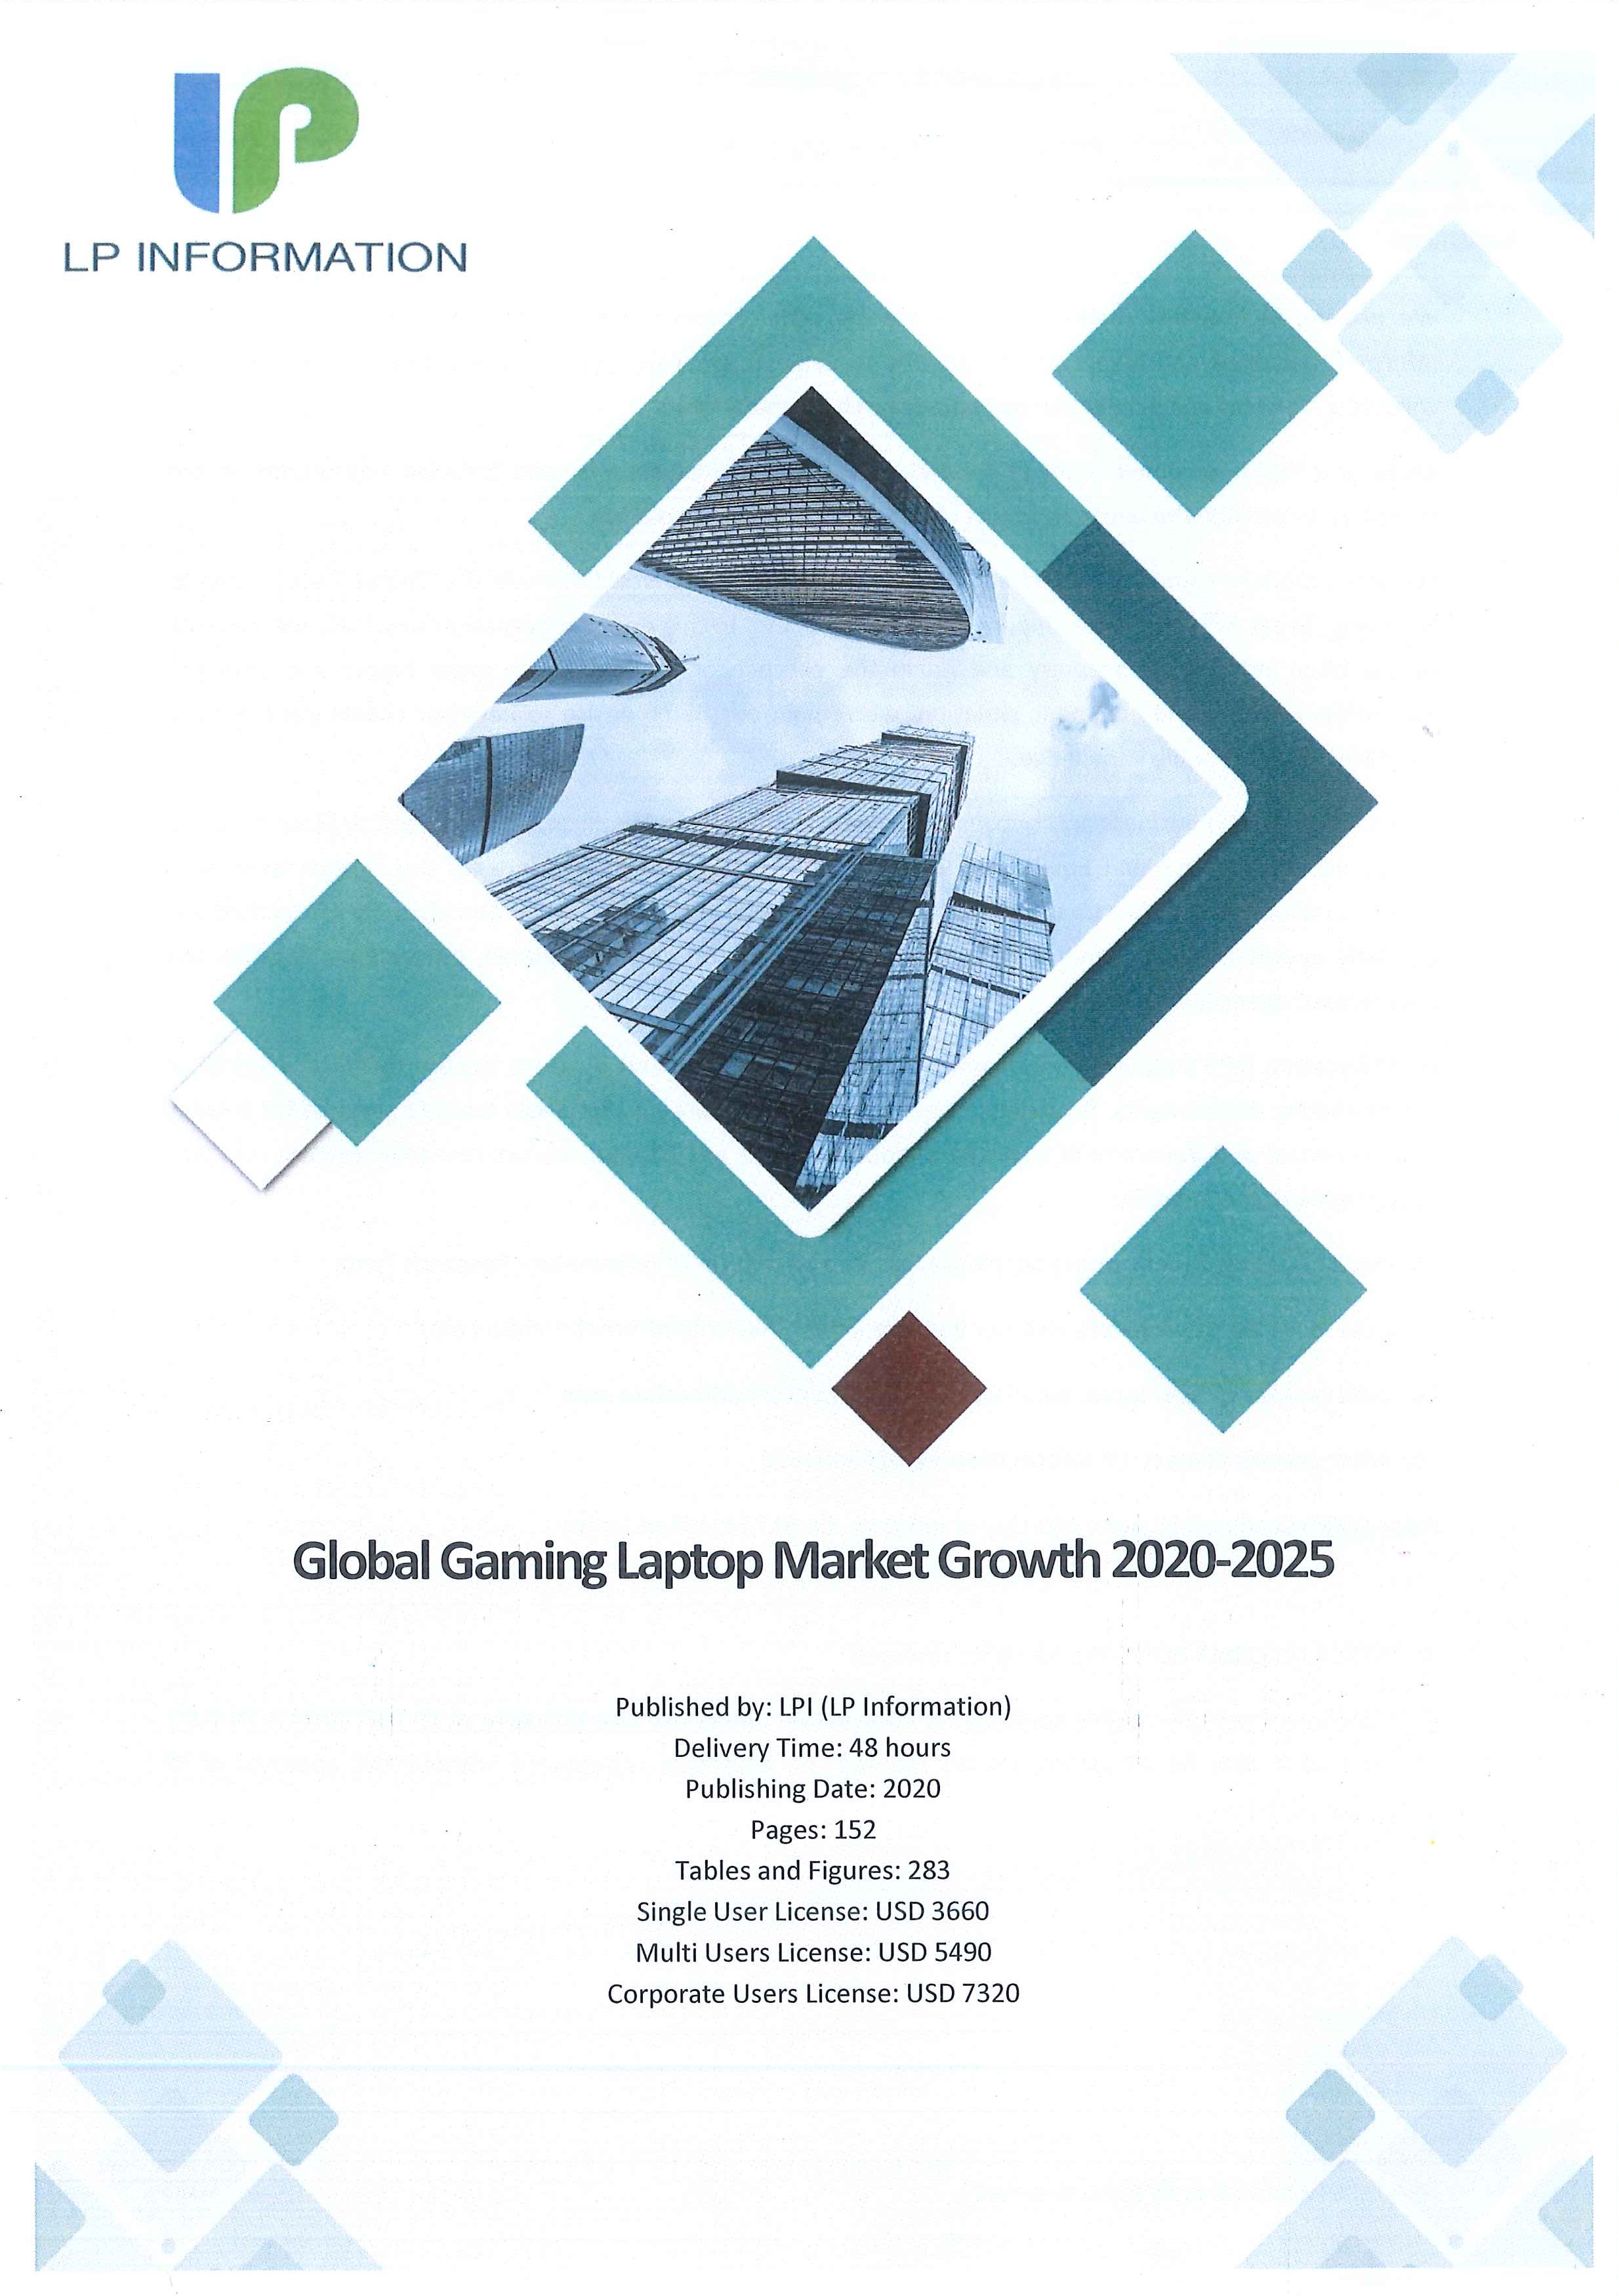 Global gaming laptop market growth 2020-2025 [e-book]